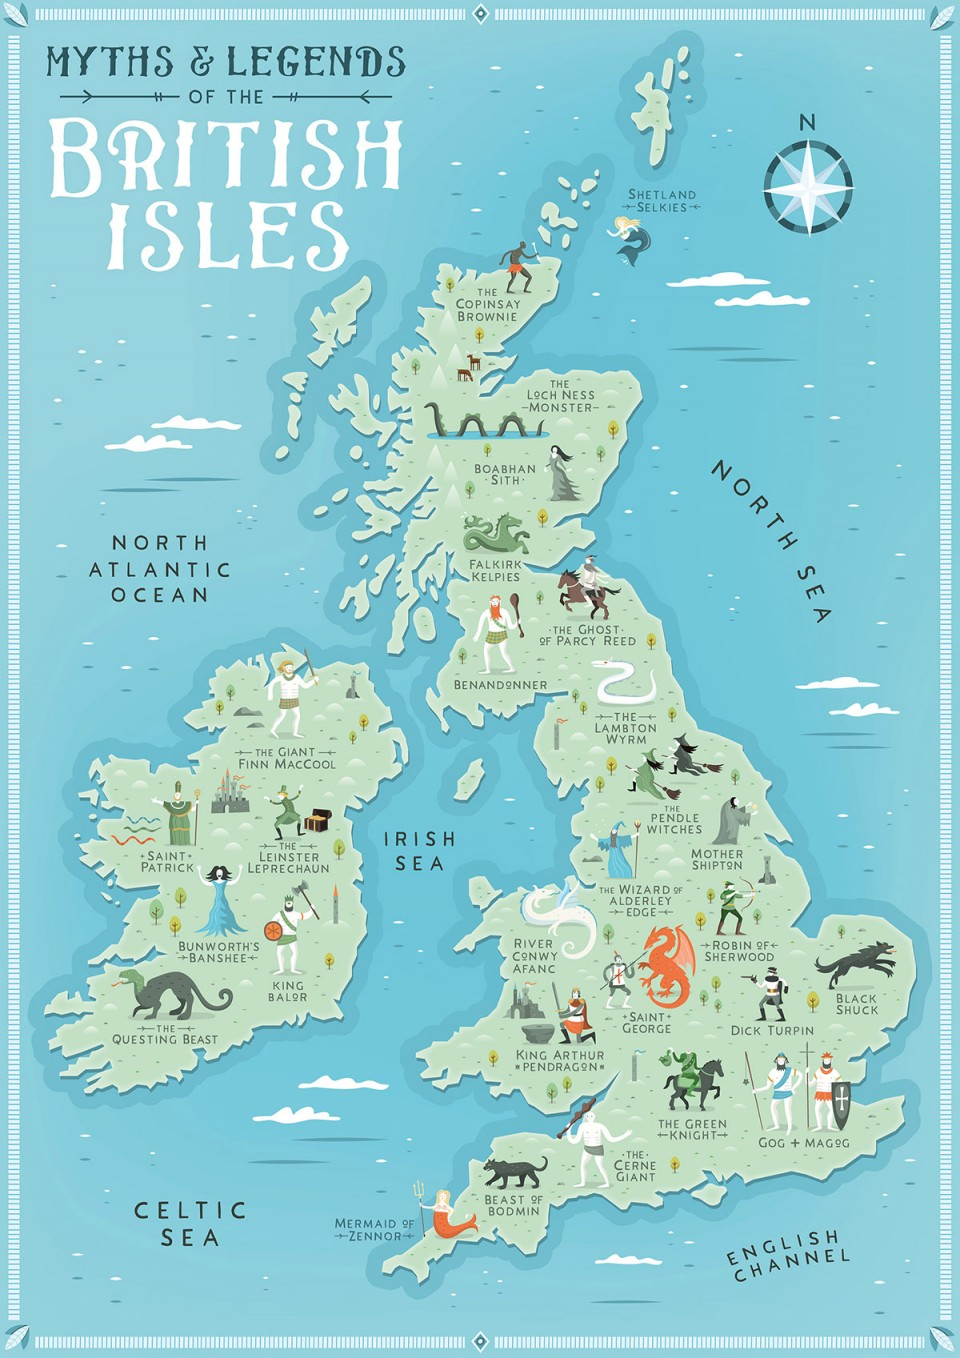 Map Of England Showing Yorkshire.Myths Legends Of The British Isles Earthly Mission